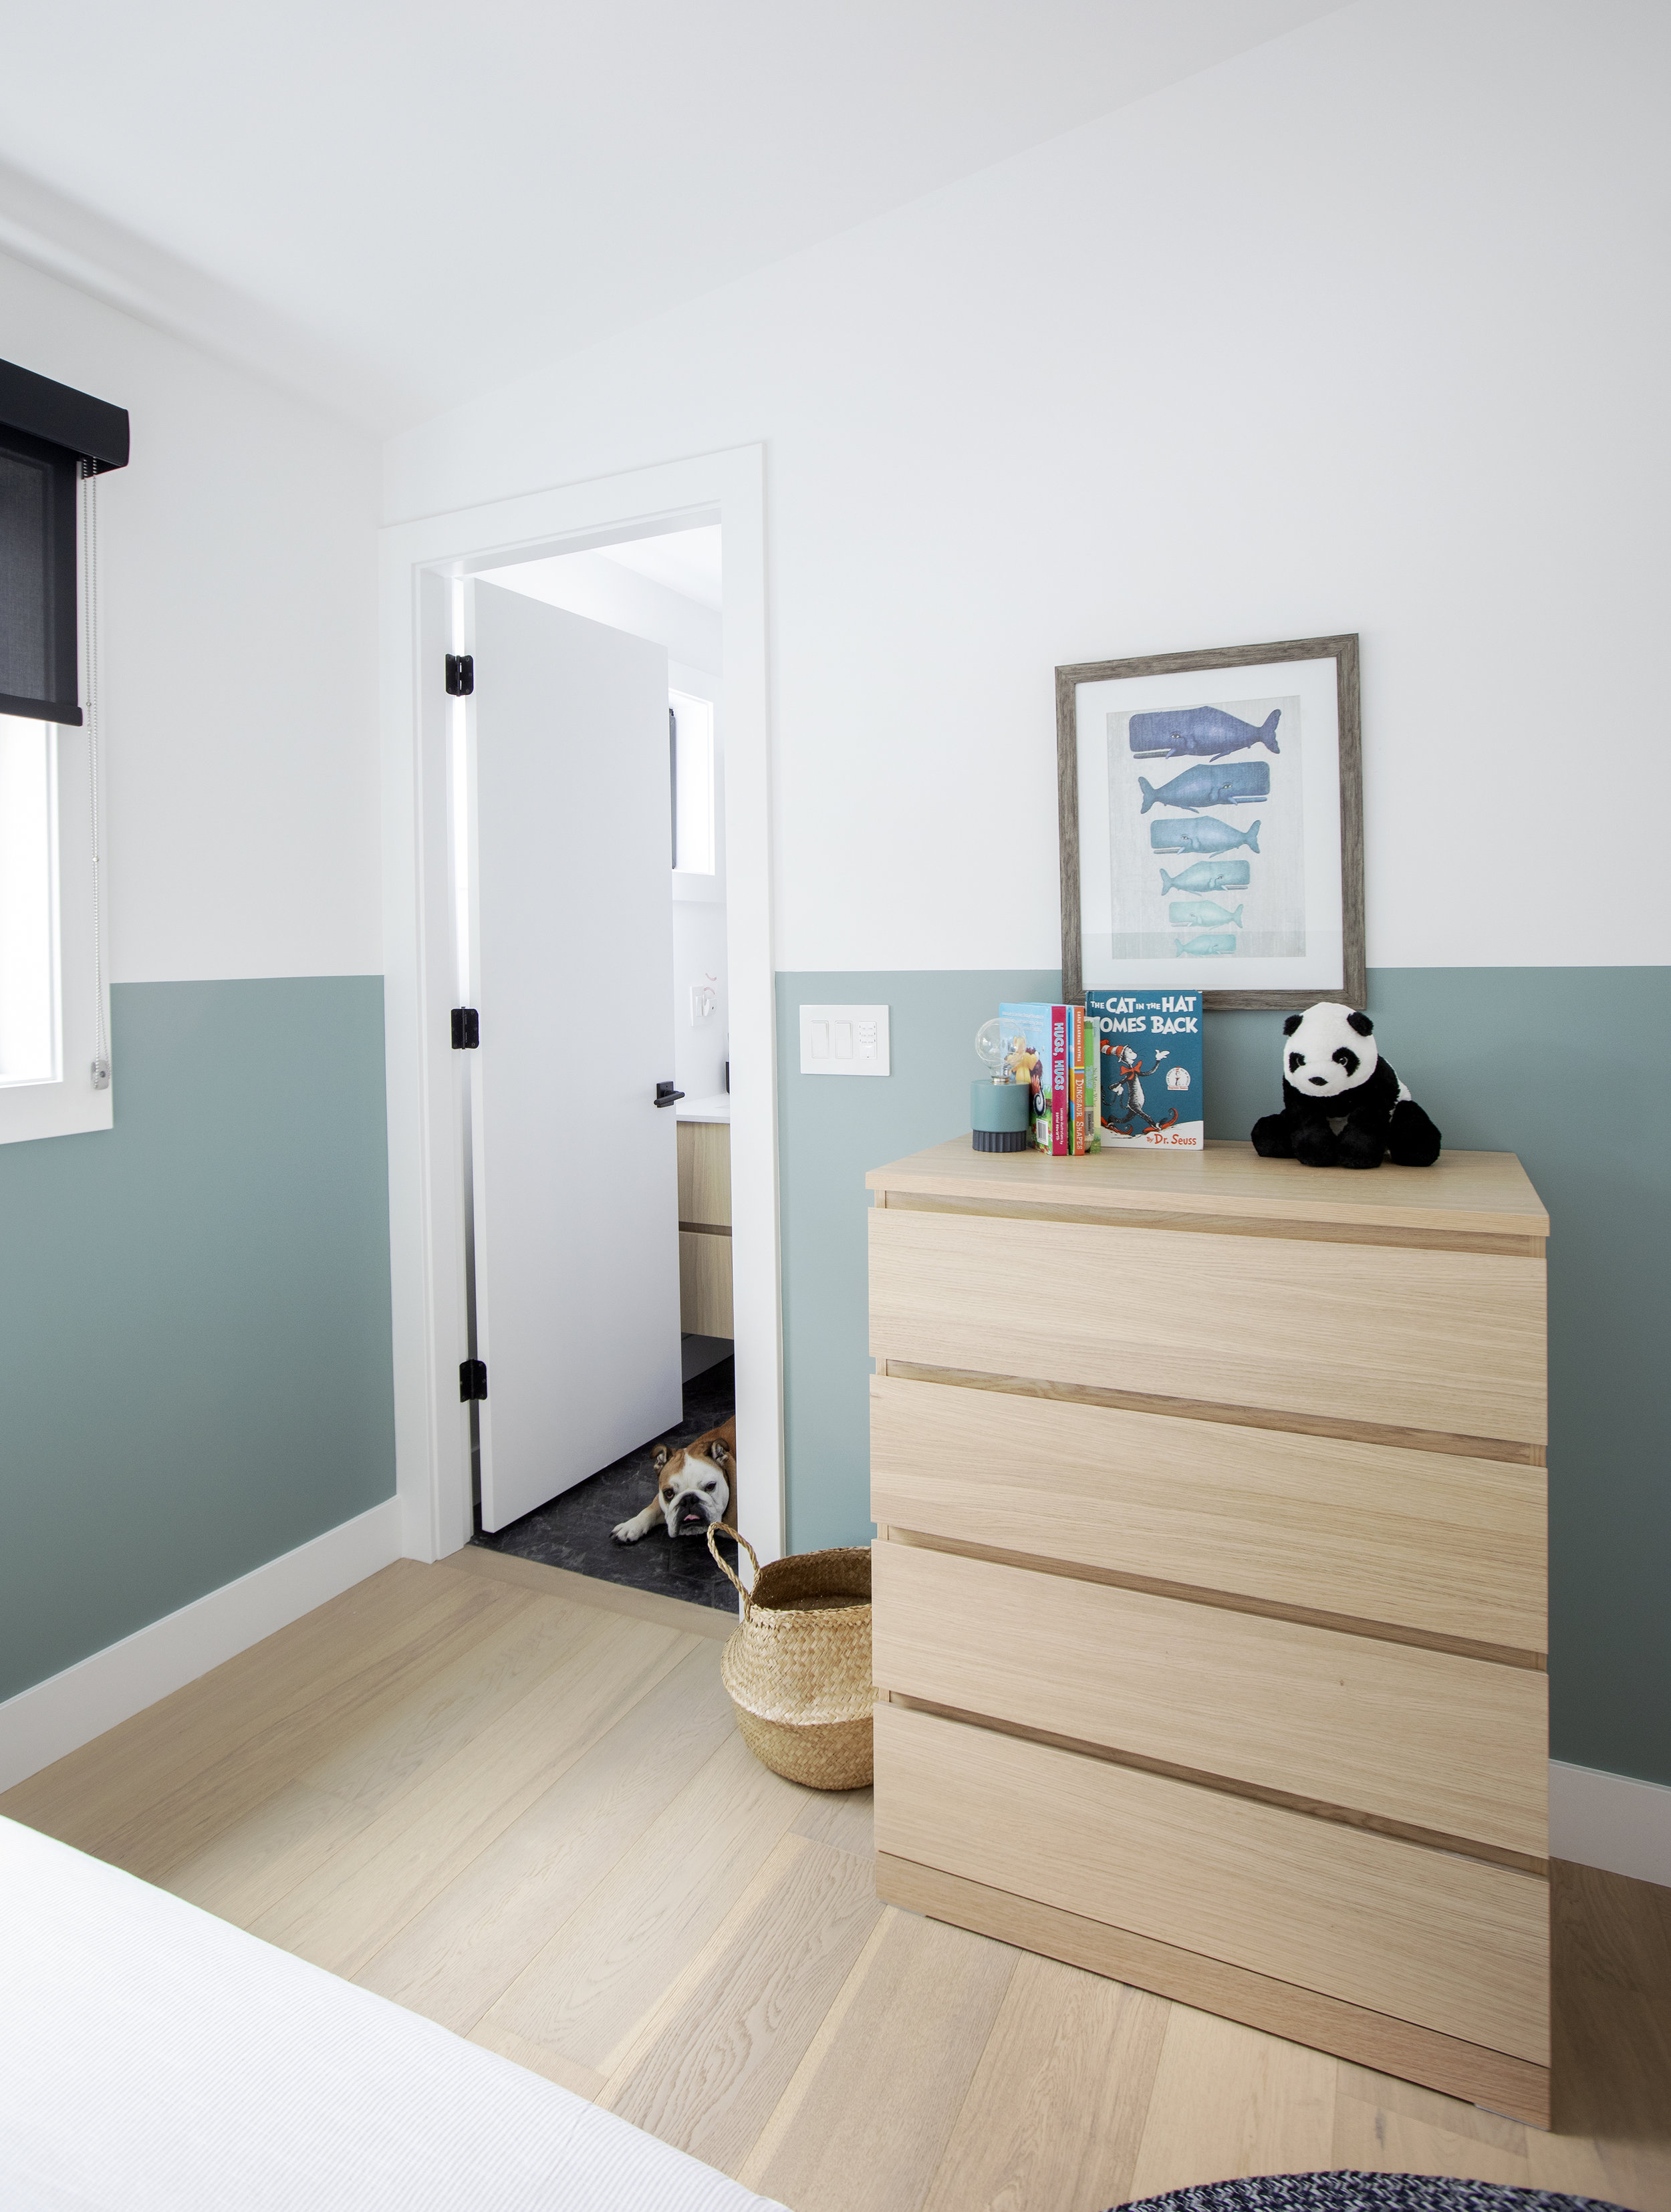 Opposite the twin bed in the third child's bedroom is a large light wood dresser drawer, sitting next to the bathroom, where a bulldog, who is a good boy, rests on the dark tile.